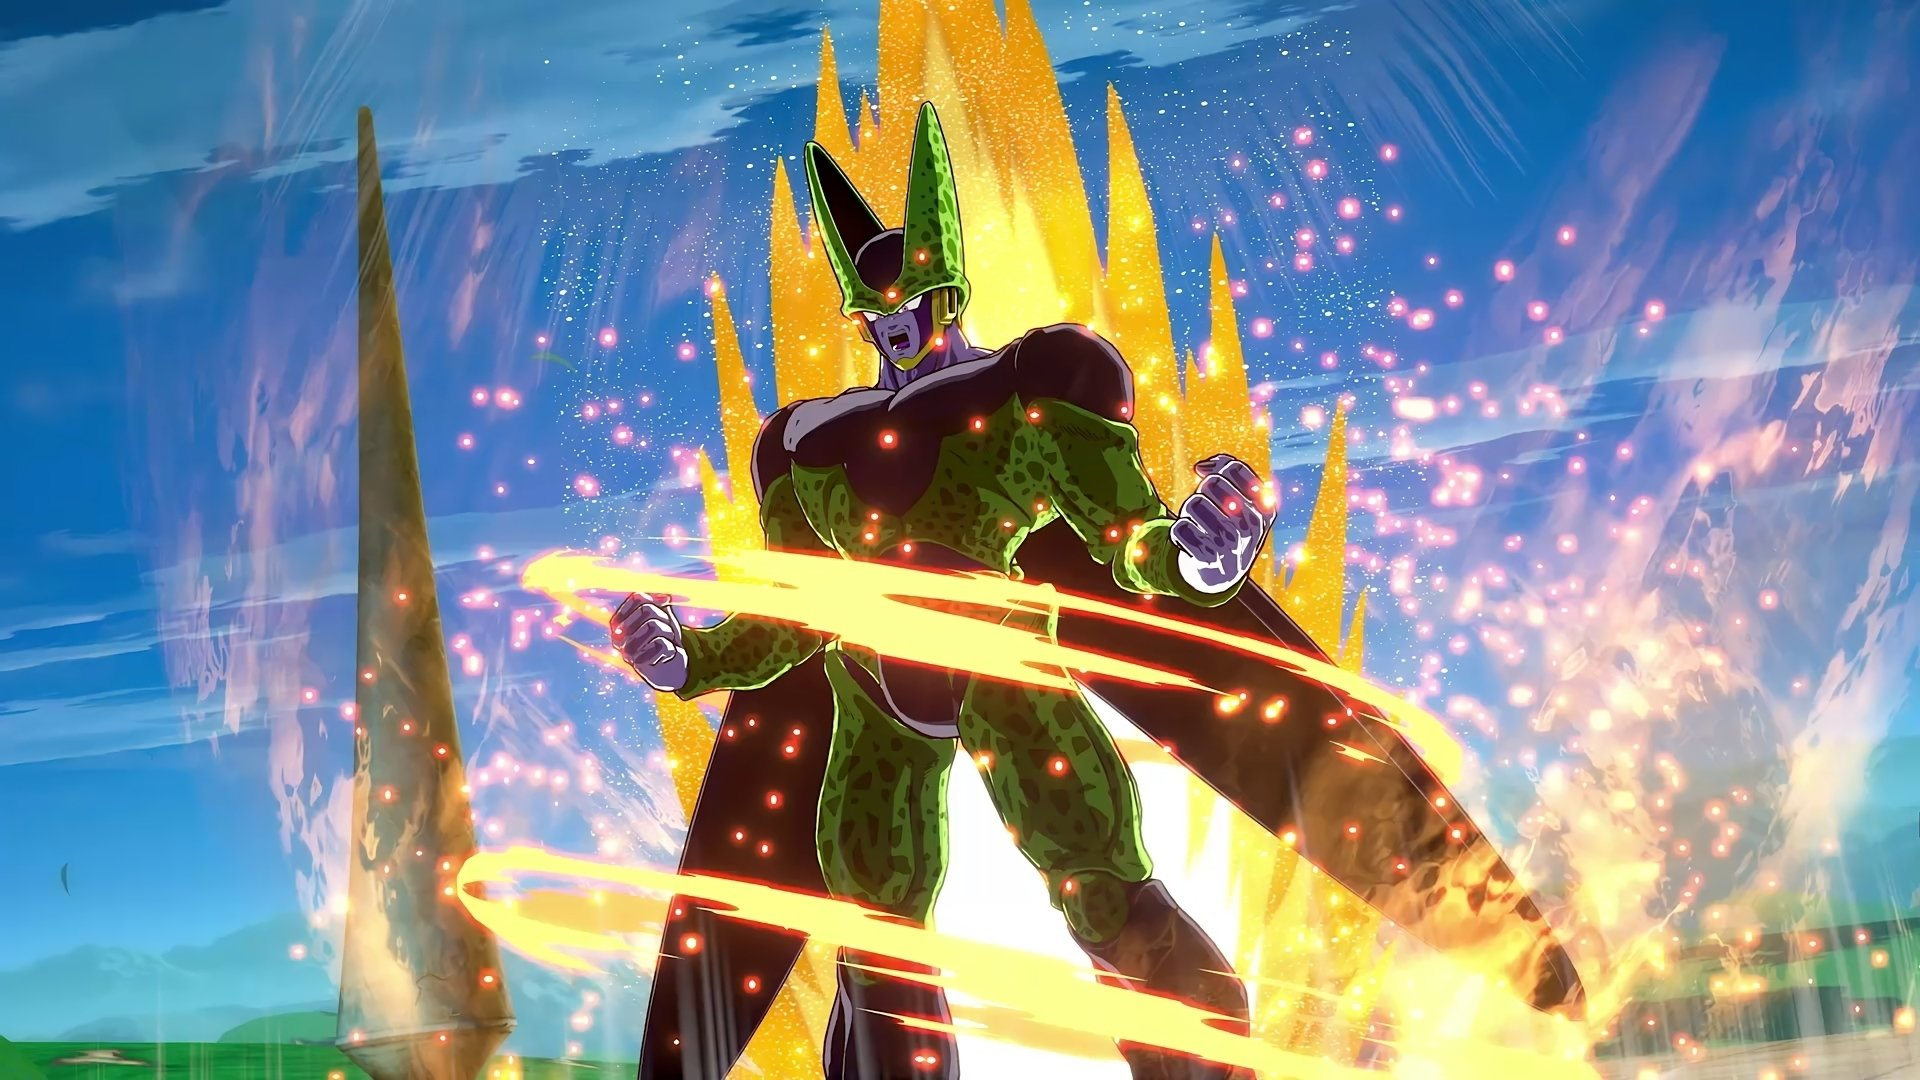 Video Game - Dragon Ball FighterZ  Cell (Dragon Ball) Wallpaper